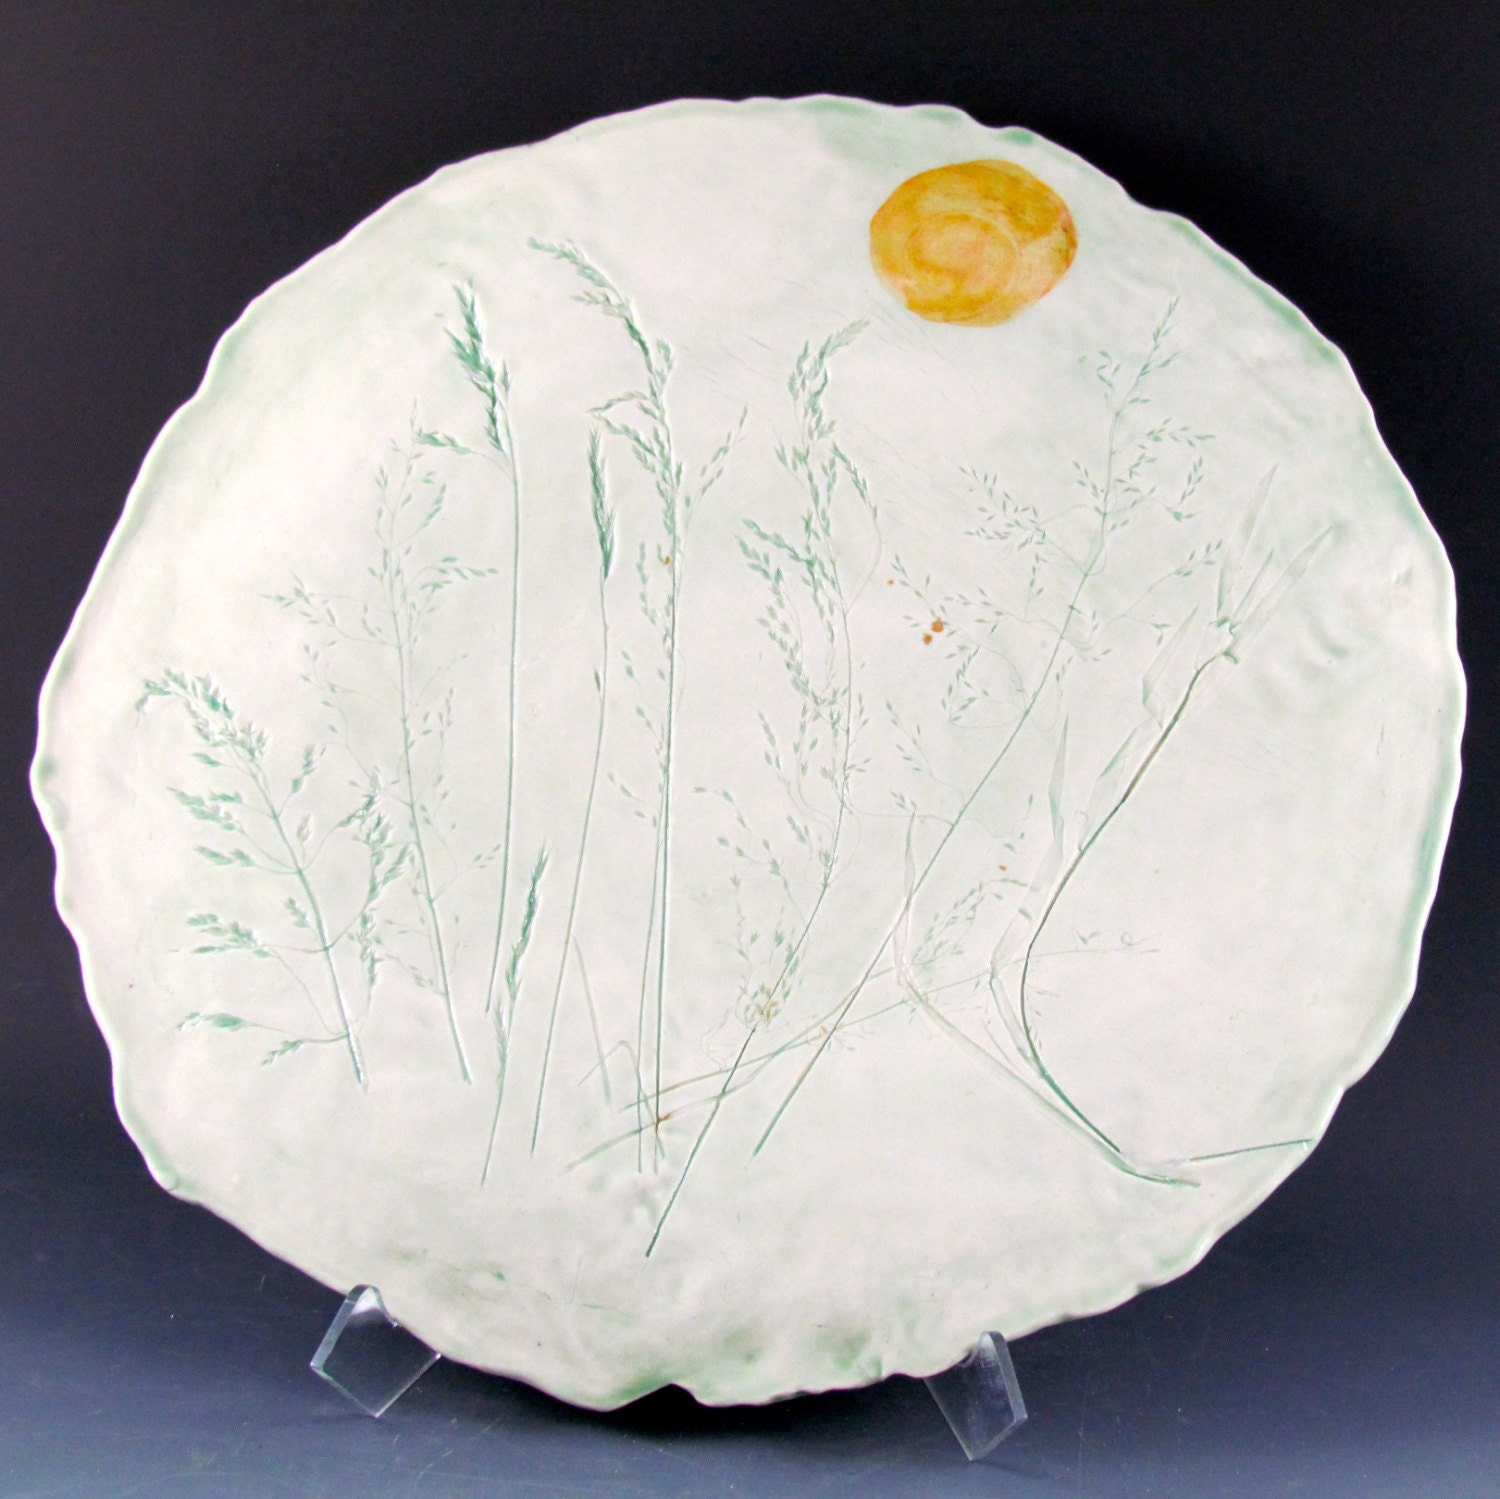 1 x 12 inch plate with inlaid grasses